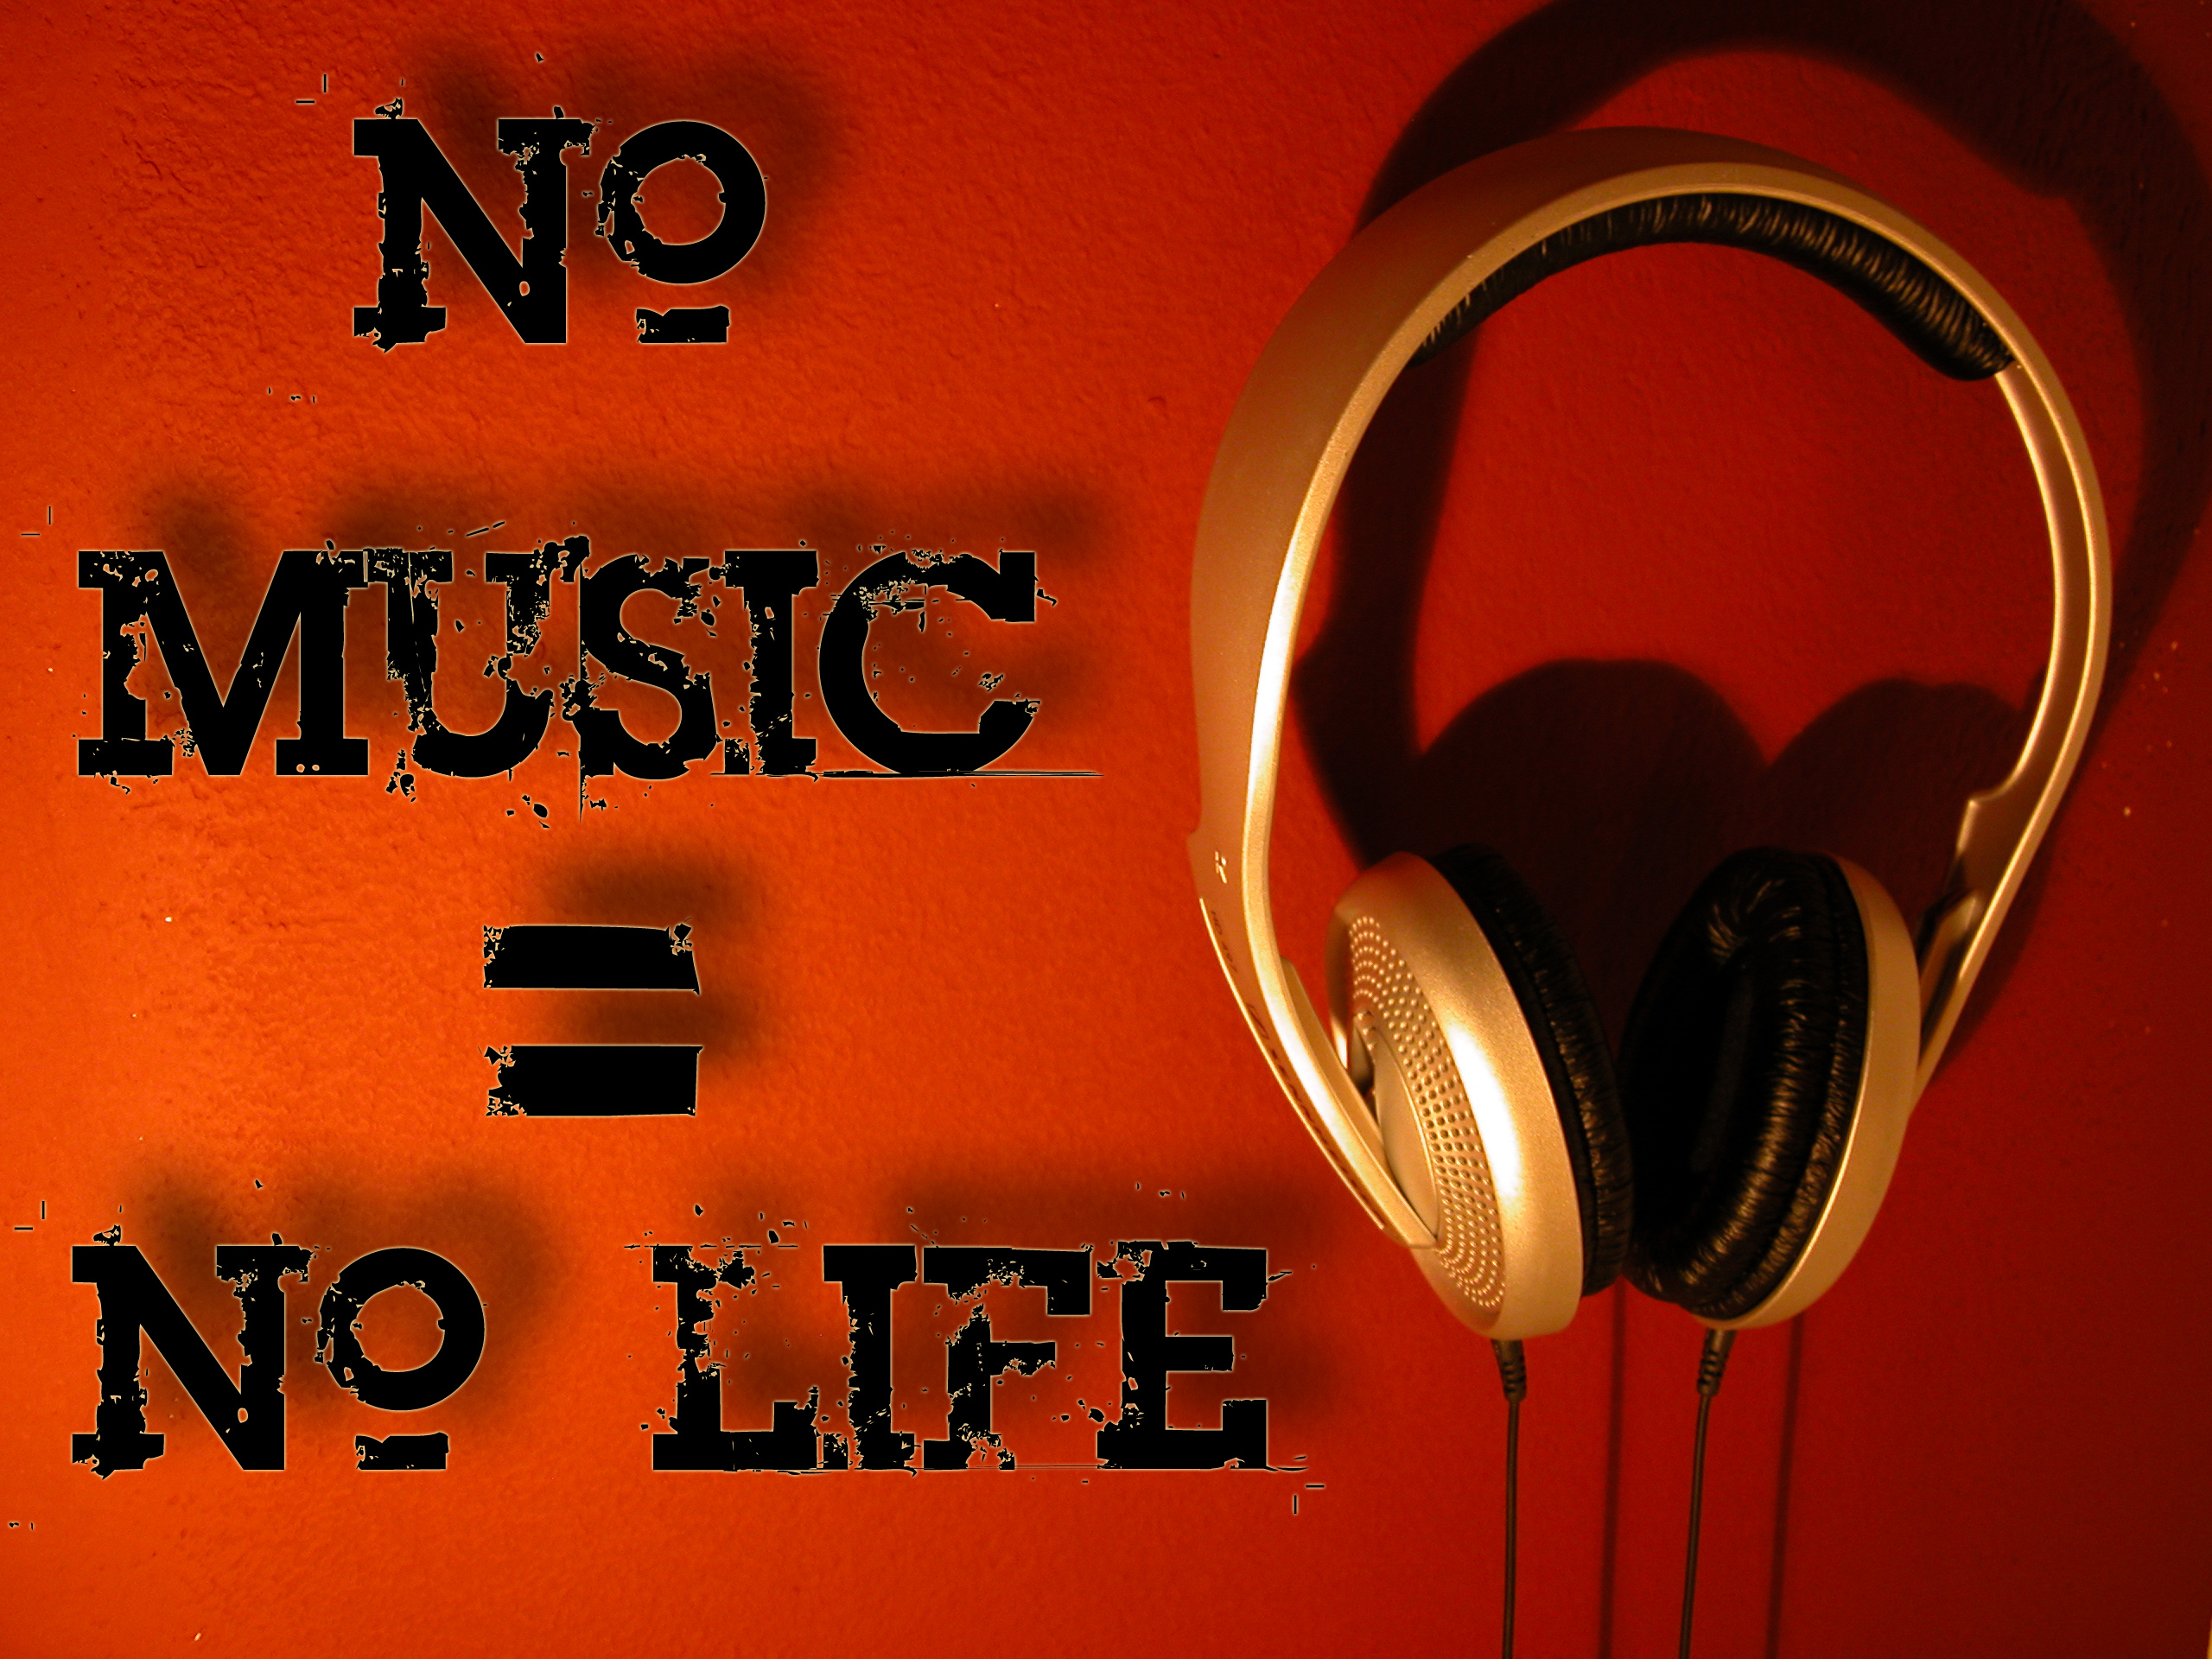 music quotes ldquo music gives - photo #26